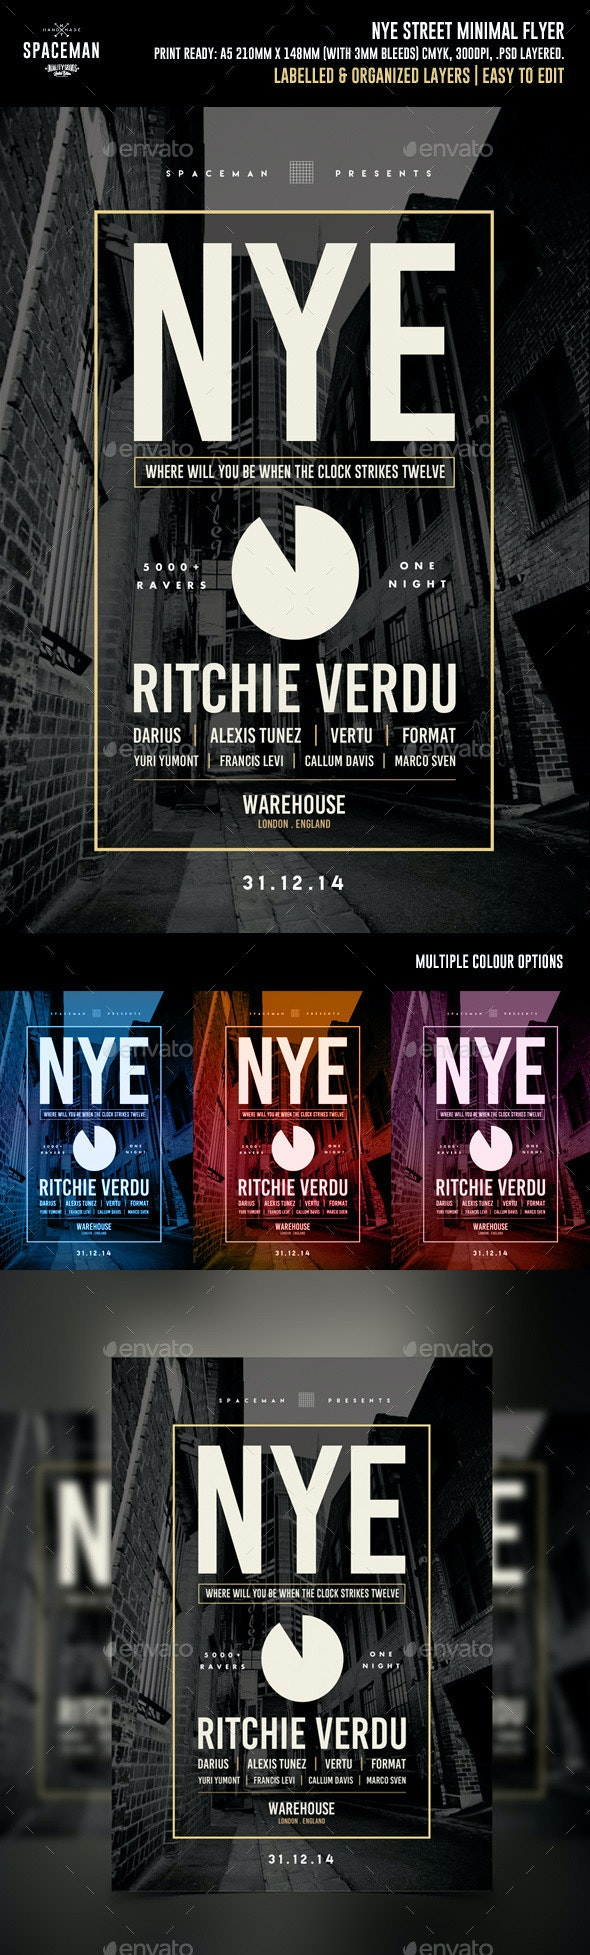 NYE Street Minimal Flyer - Clubs & Parties Events